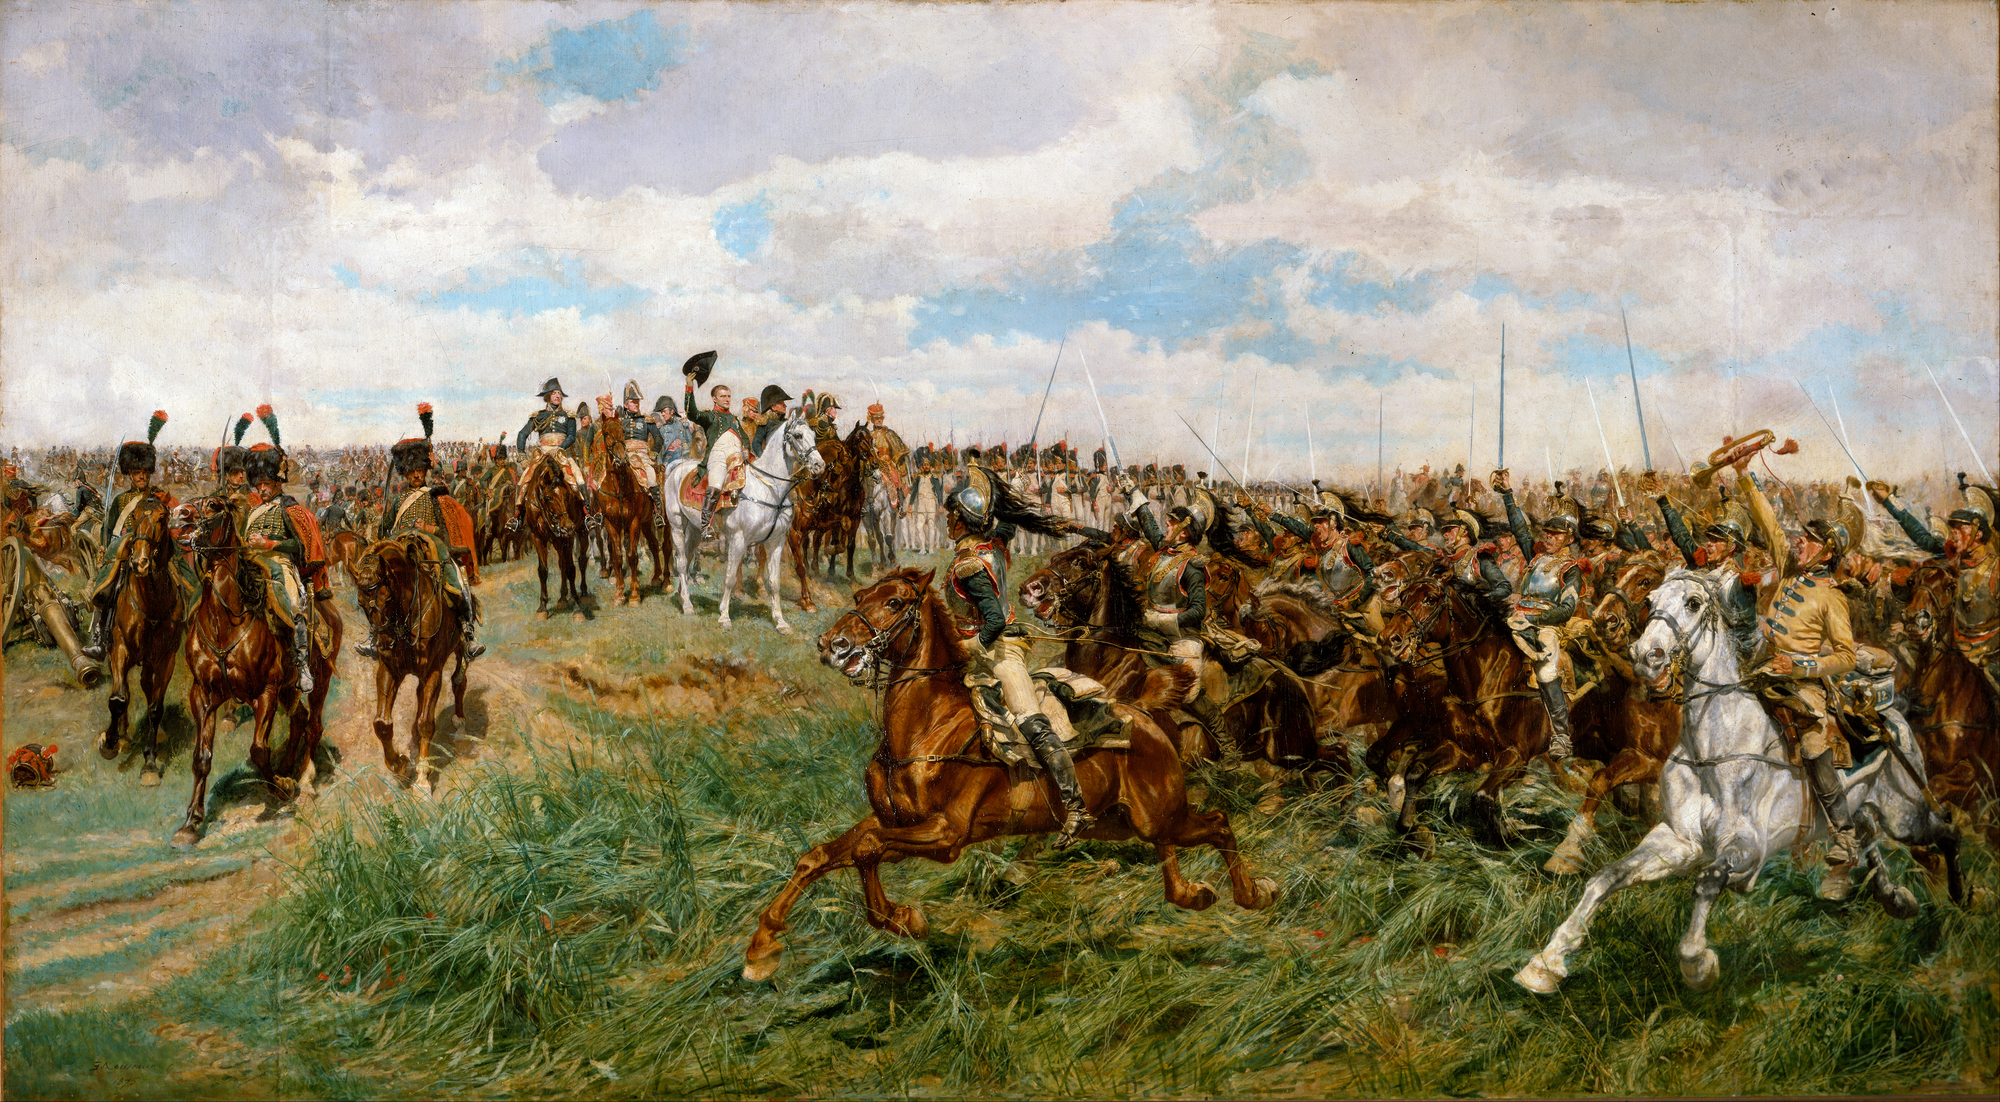 https://upload.wikimedia.org/wikipedia/commons/2/29/Friedland,_1807_(1875)_Ernest_Meissonier.jpg